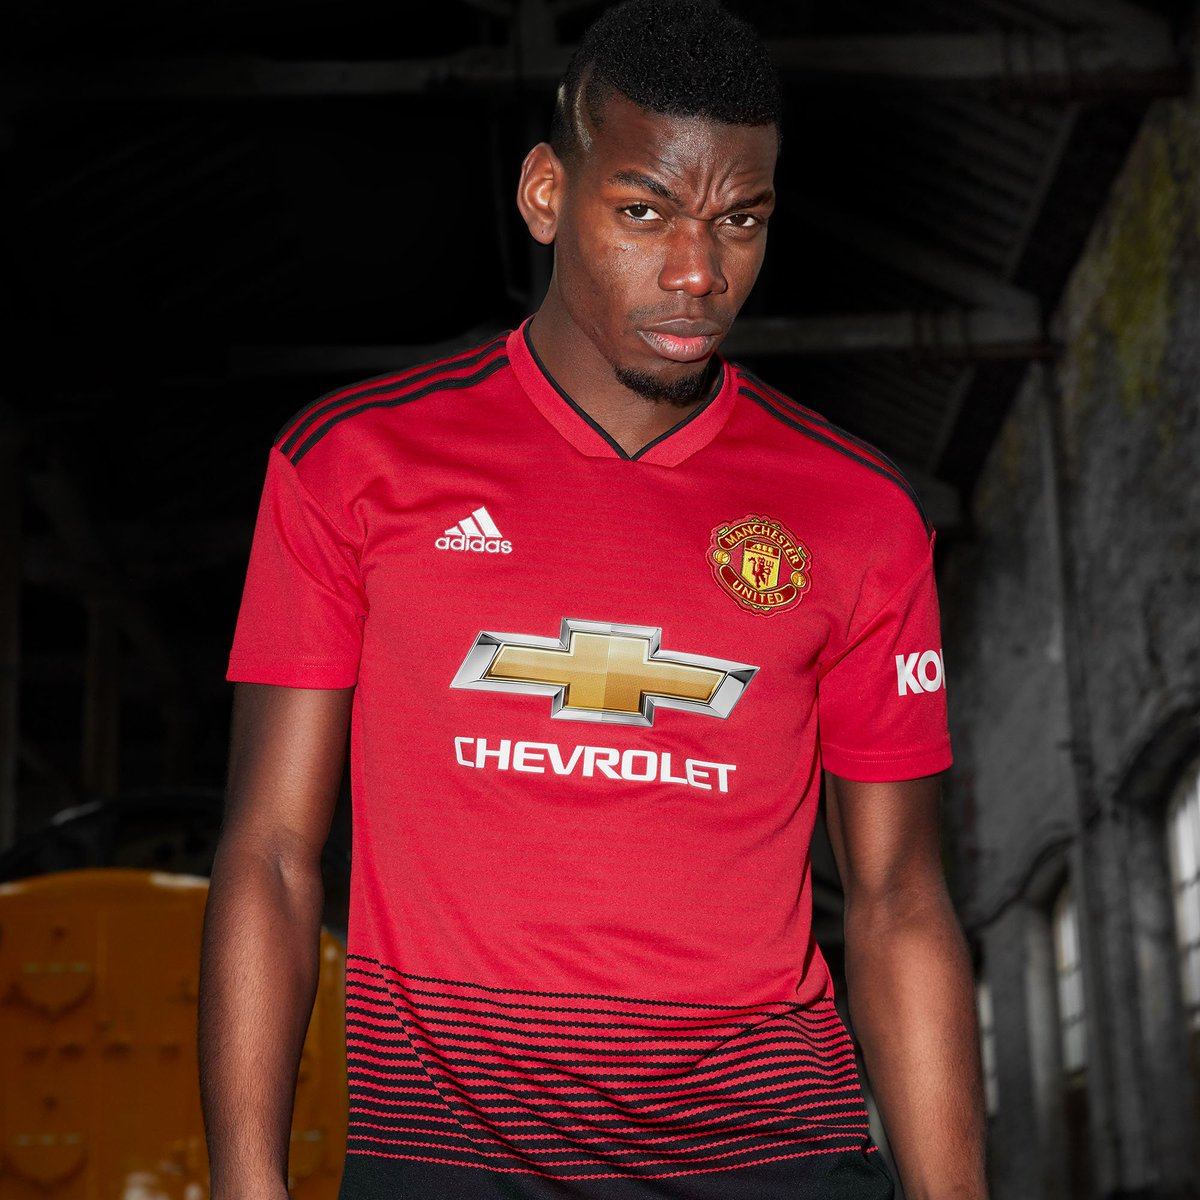 Manchester United drop their 2018/19 home kit 🔴